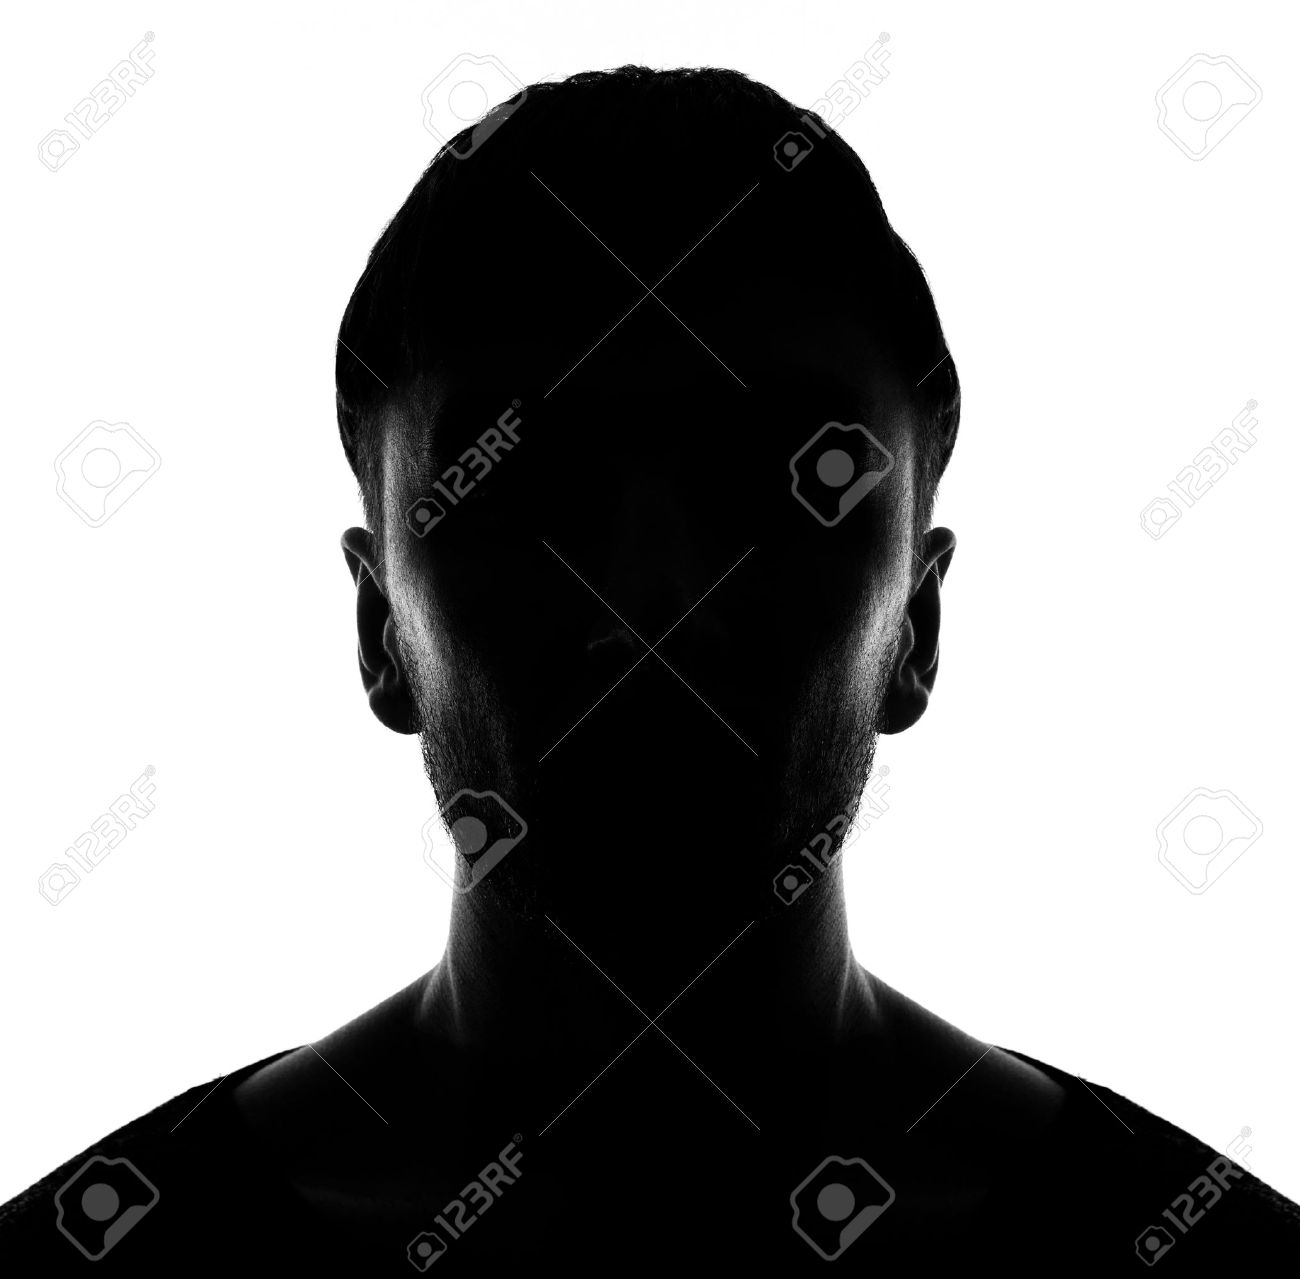 Hidden face in the shadow.male person silhouette - 58913681